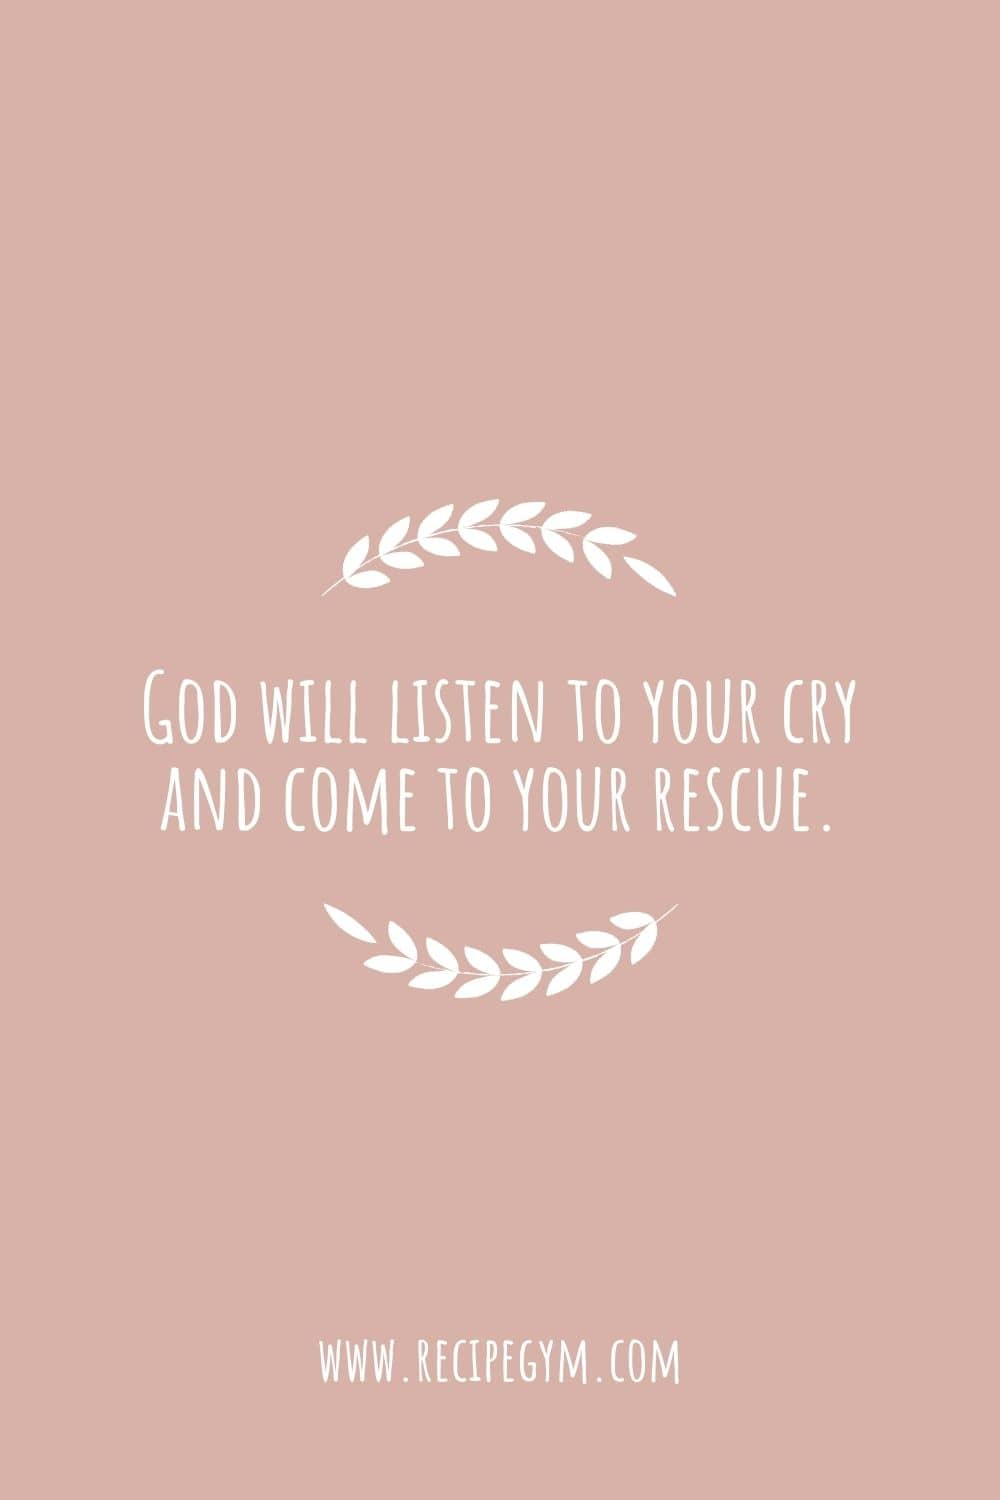 God will listen to your cry